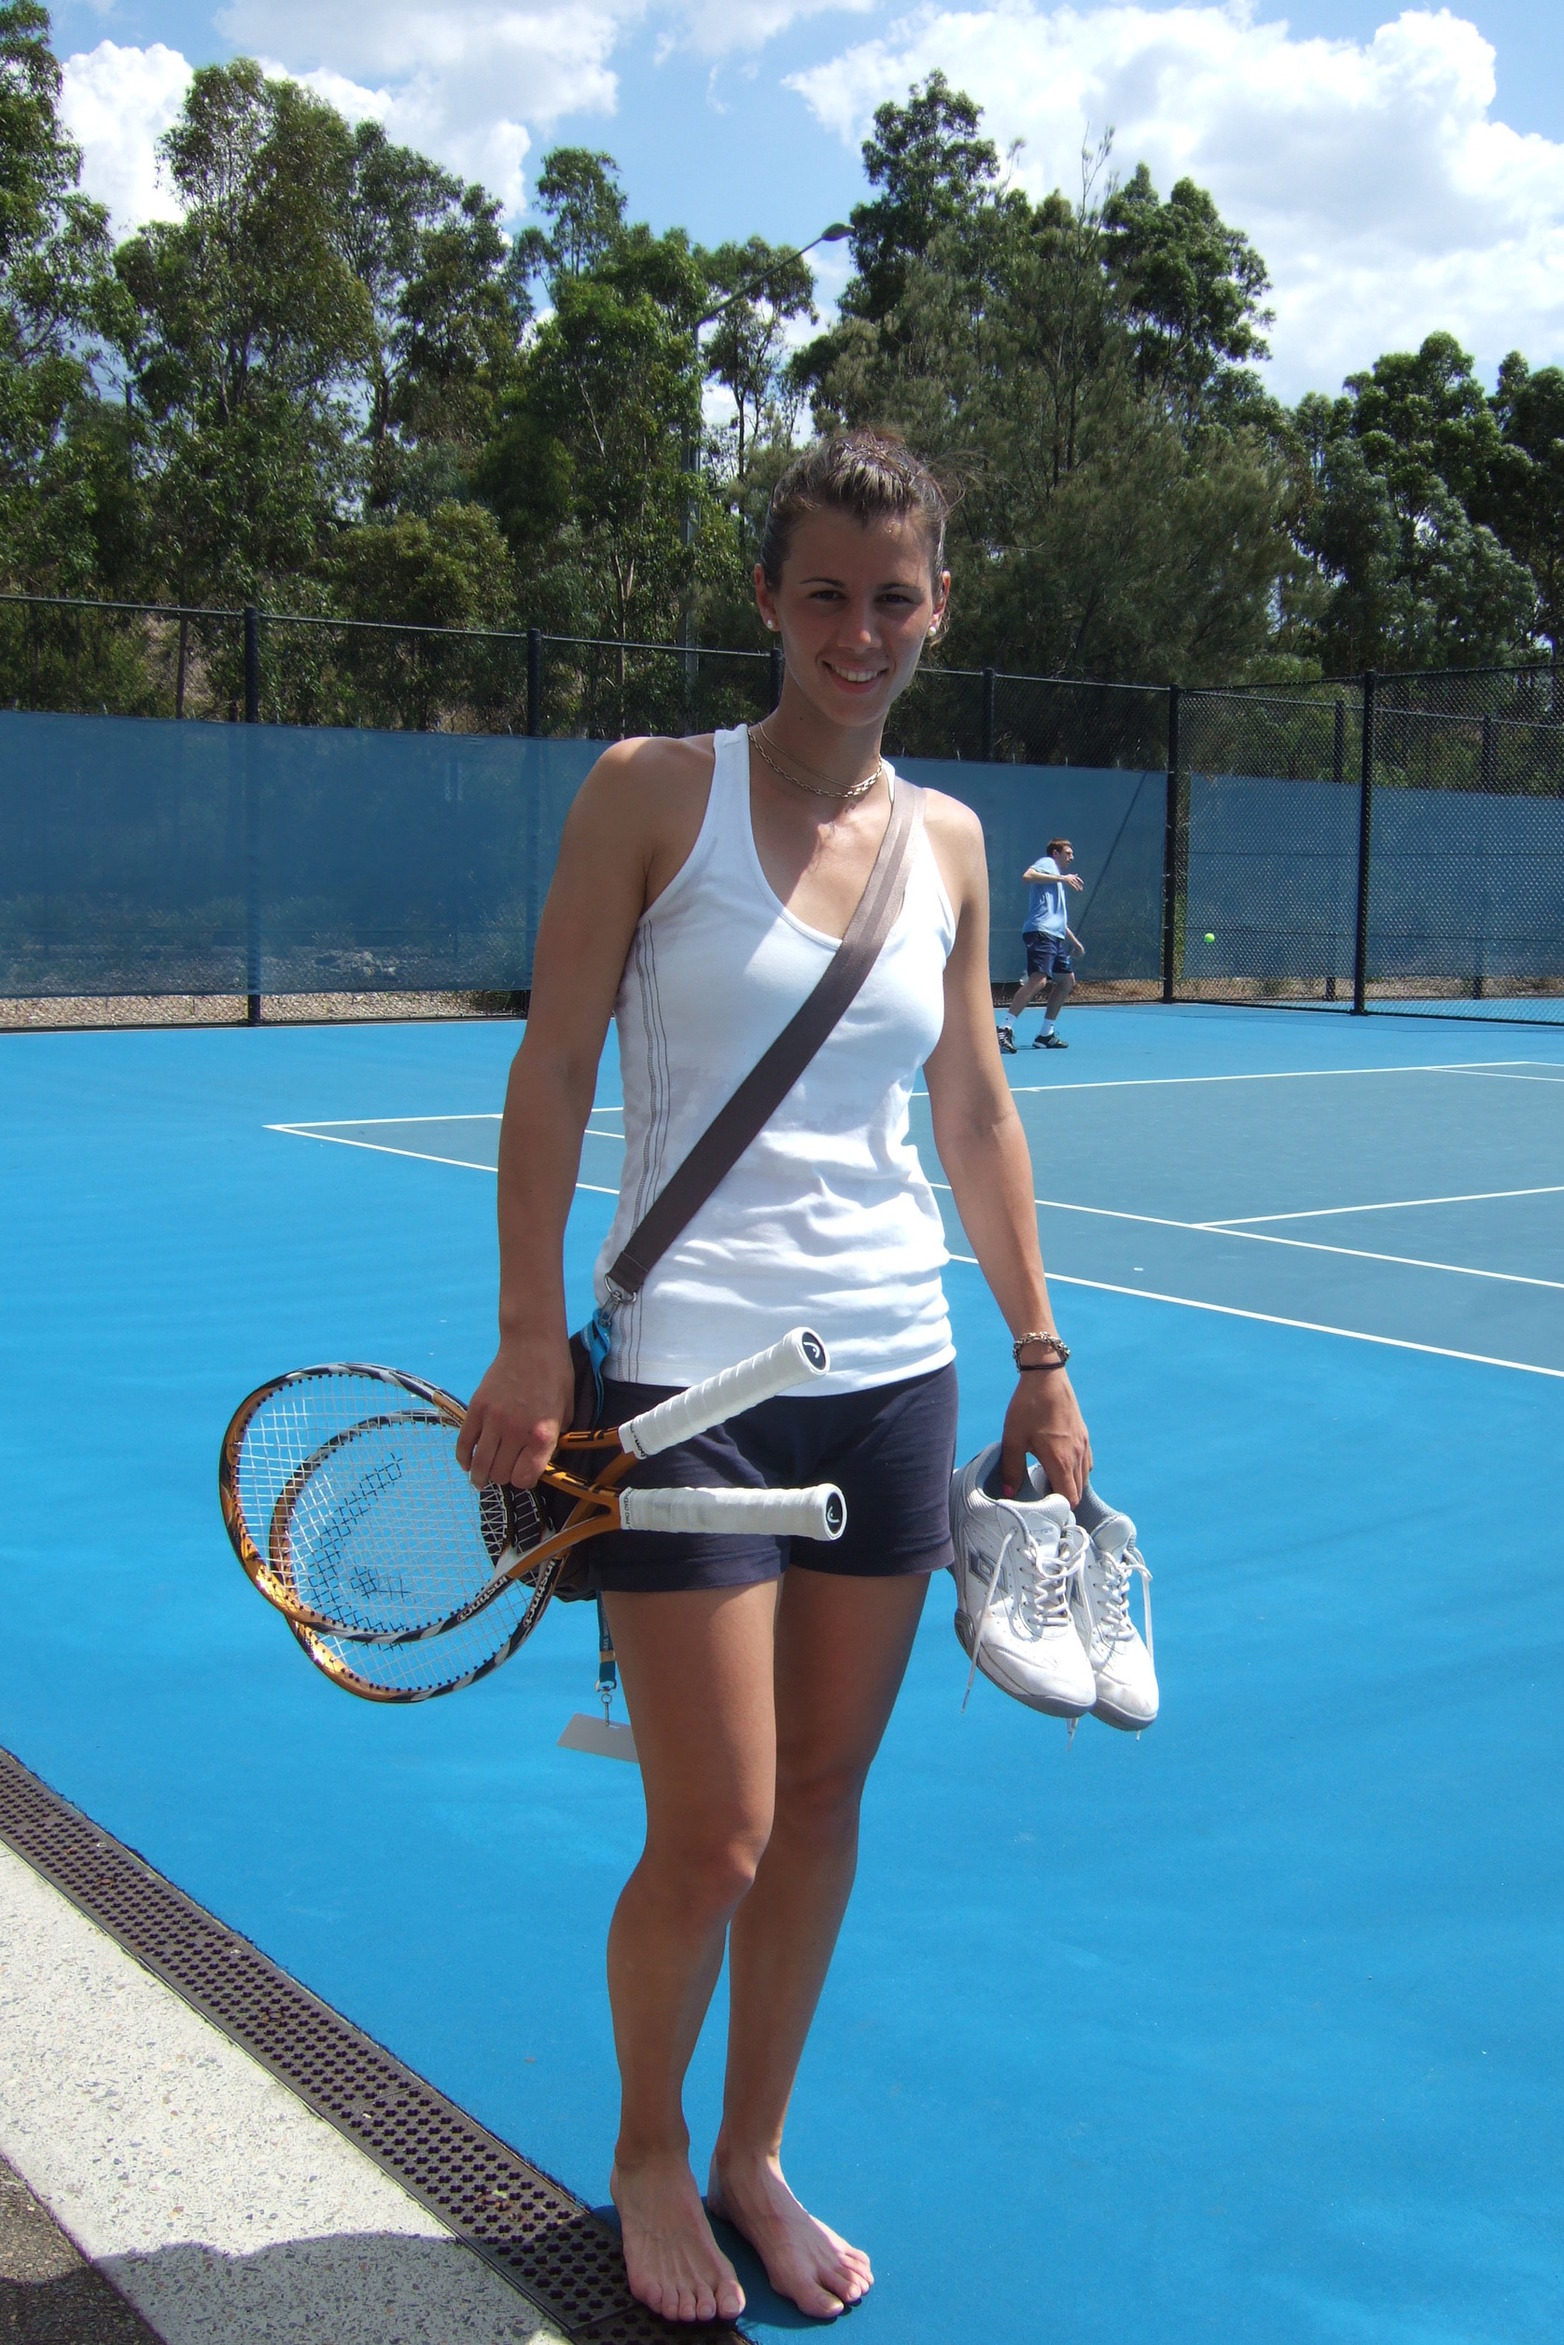 Tsvetana pironkova news tsvetana pironkova news page 16 how voltagebd Image collections